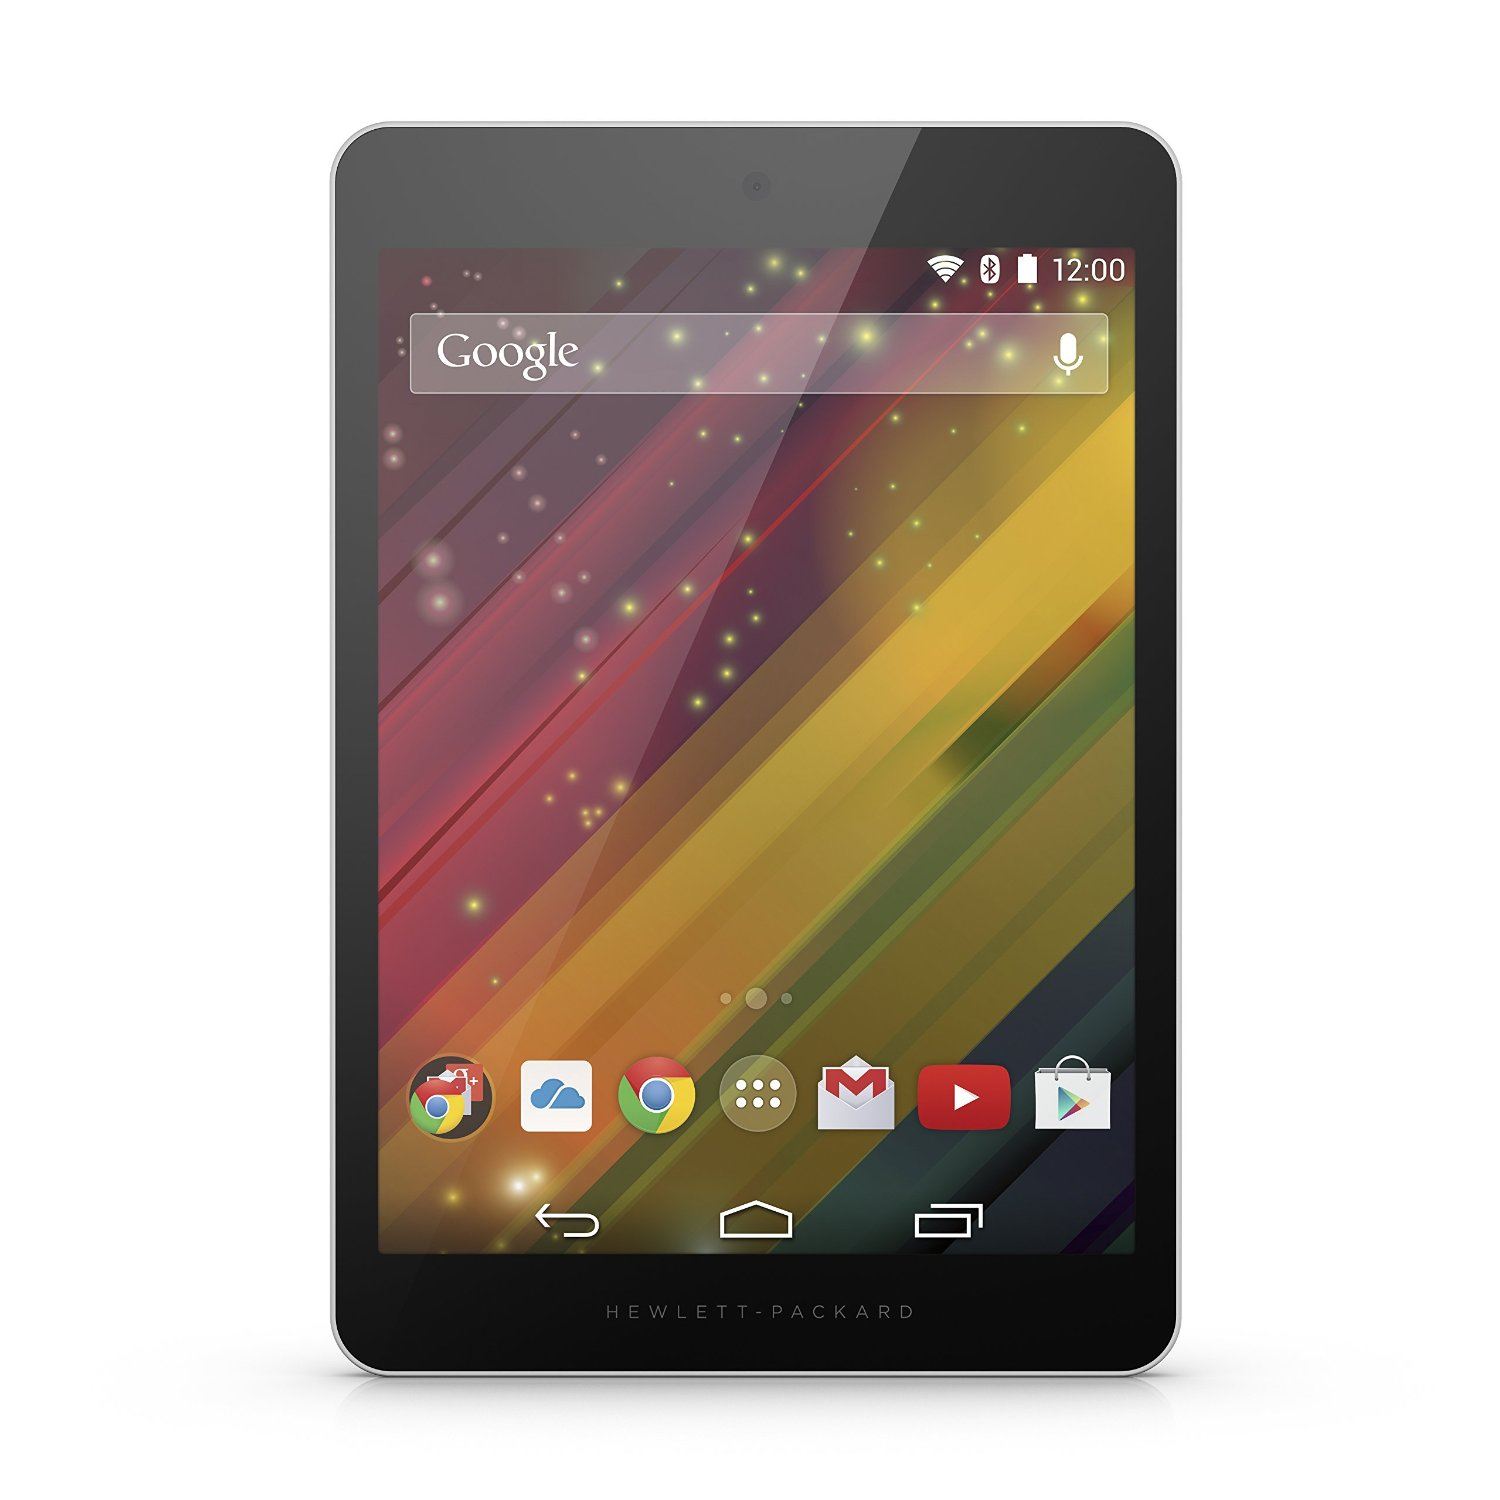 Küchenplaner Tablet Android Hp 8 Tablet Review And Price